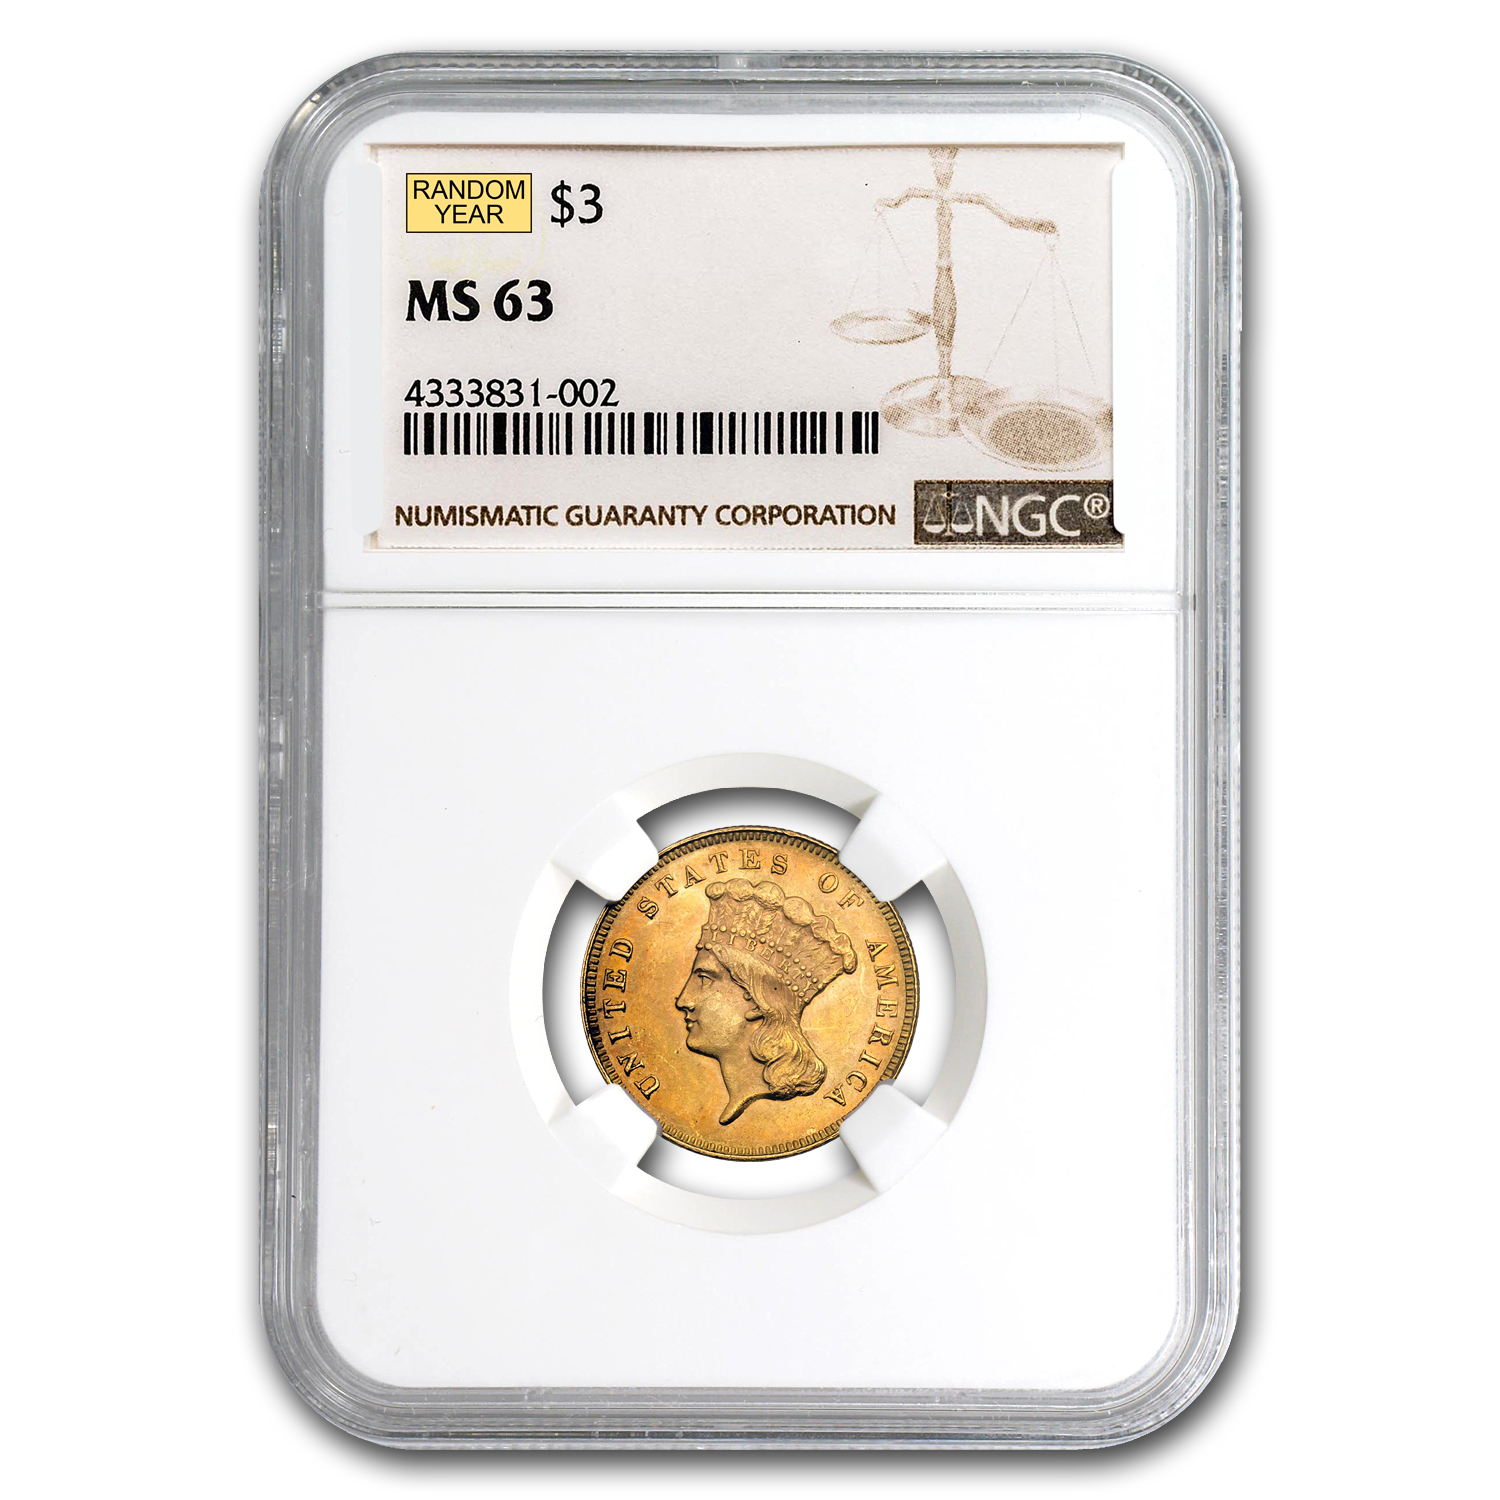 $3 Gold Princess MS-63 NGC/PCGS - Random Year